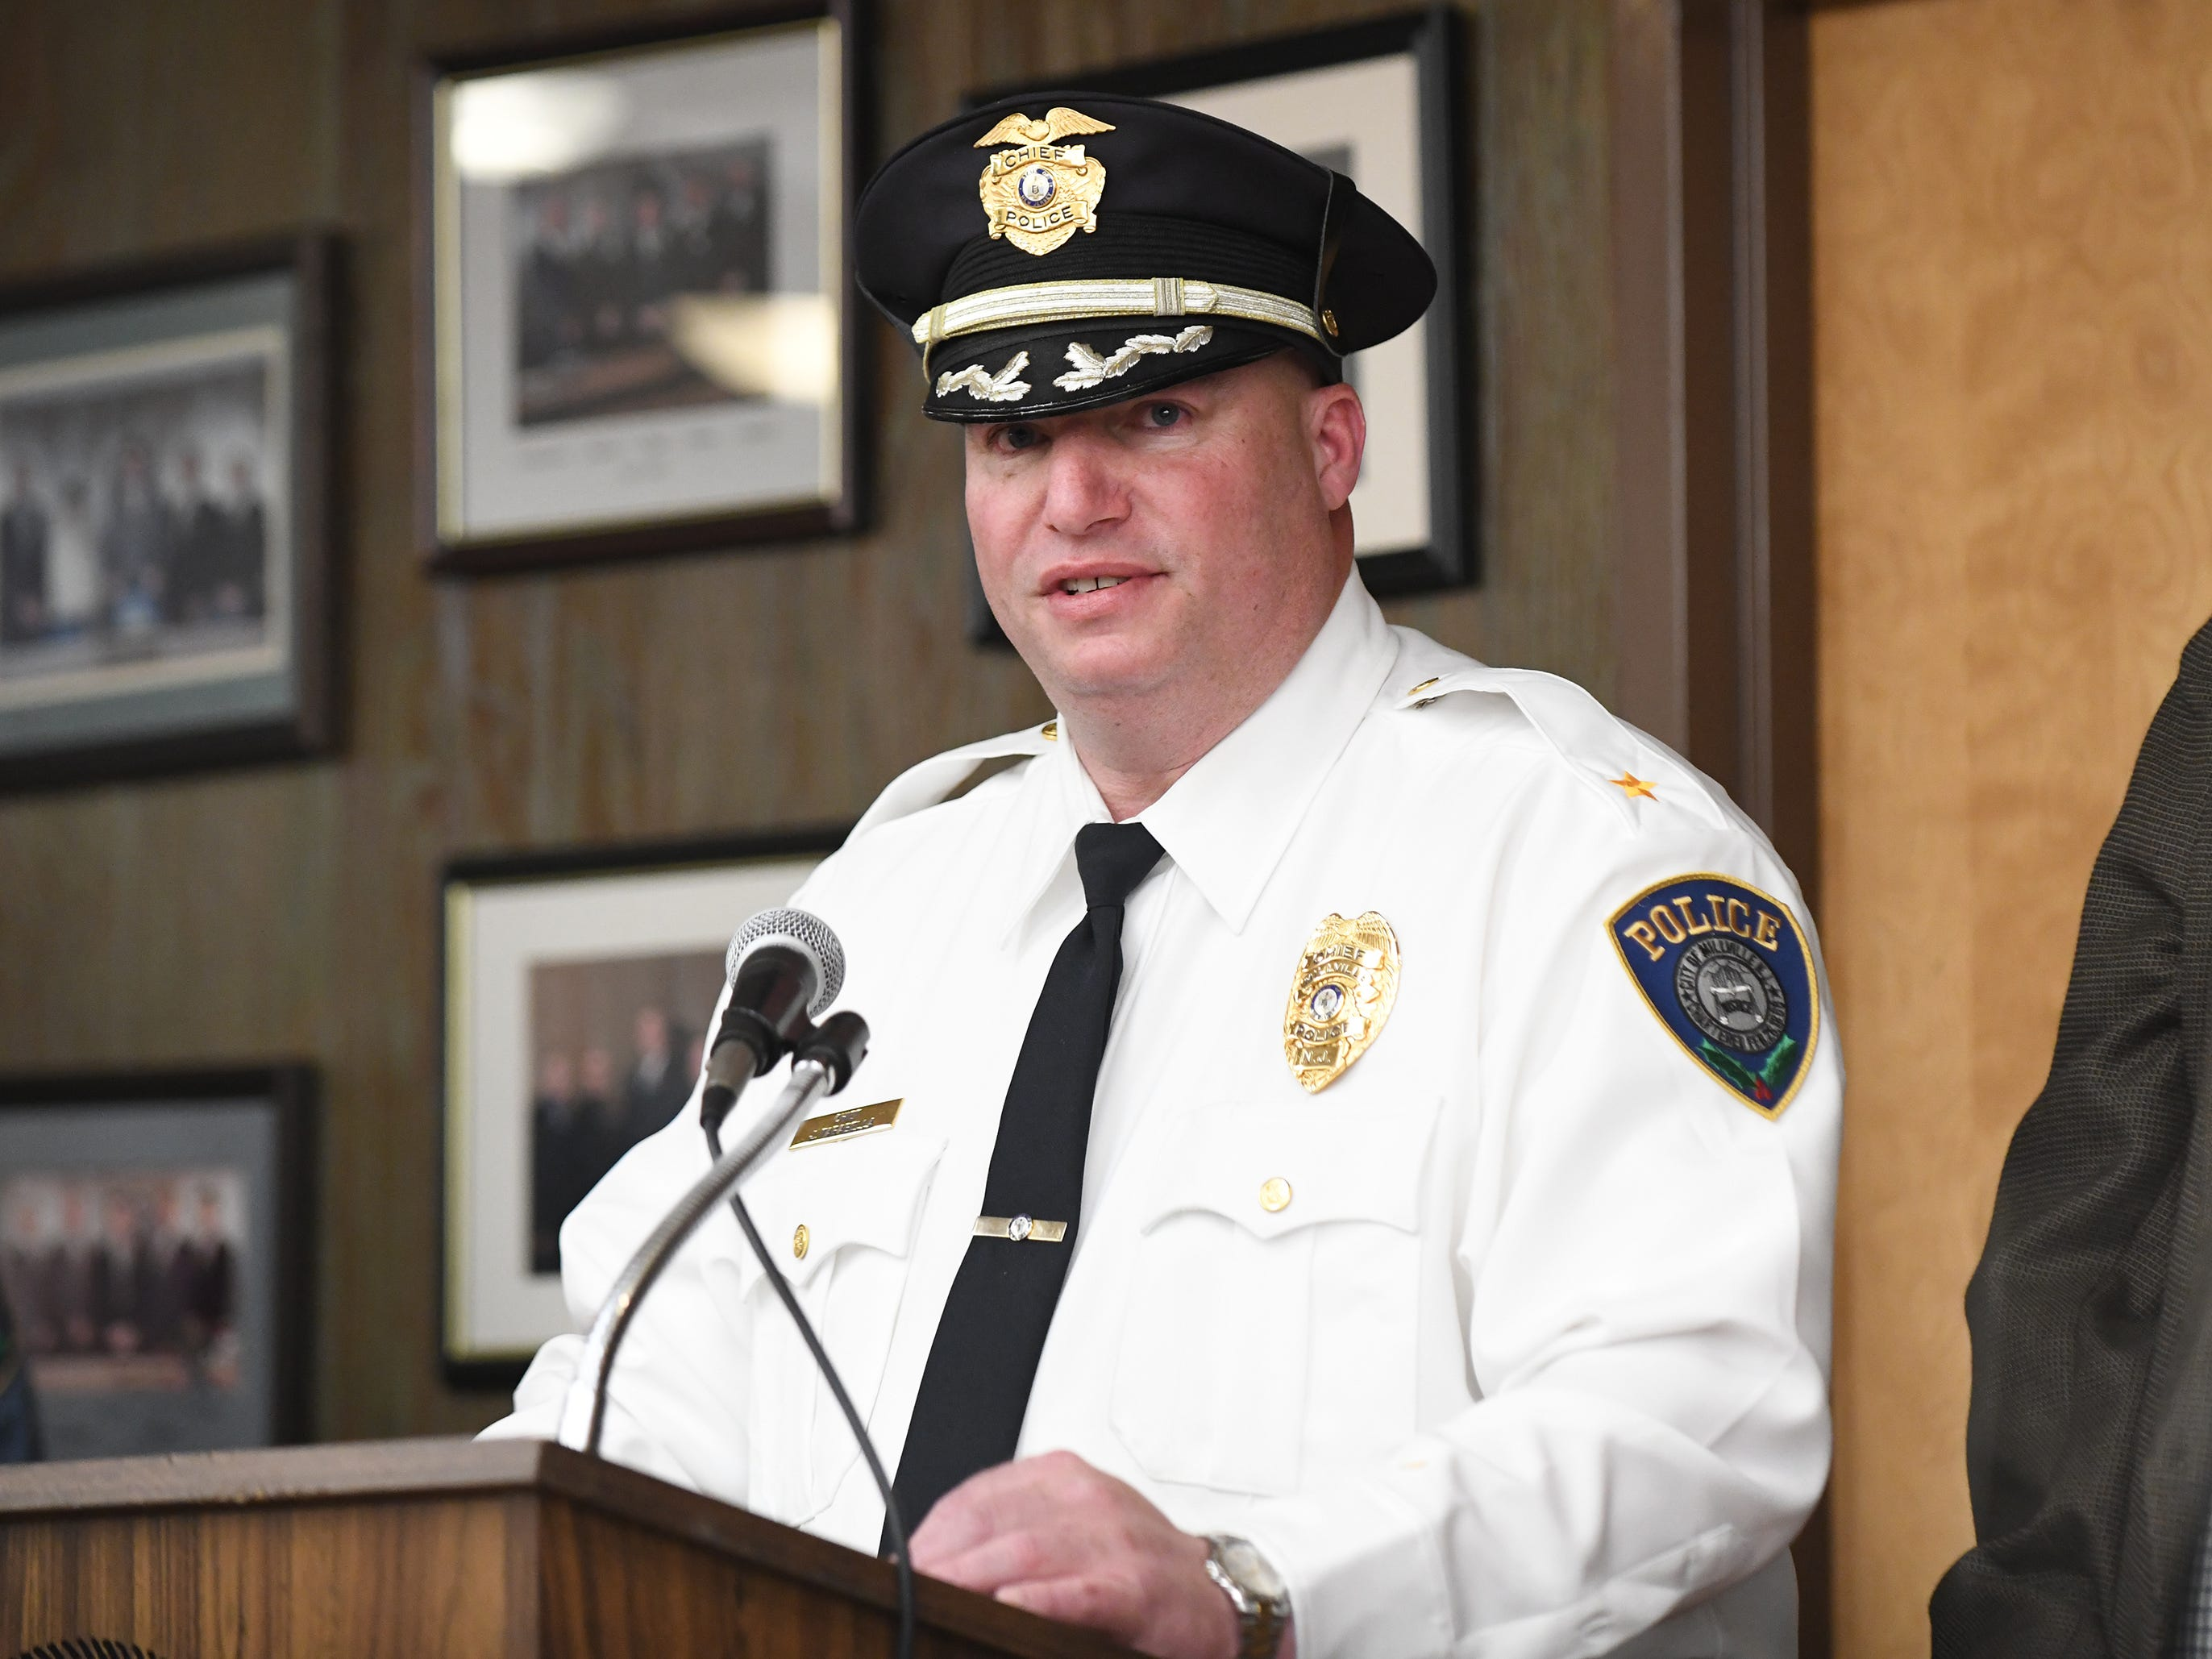 Millville Police Chief Jody Farabella speaks about Lt. Lawrence J. Mulford, regarding his retirement, at Tuesday night's City Commission meeting.